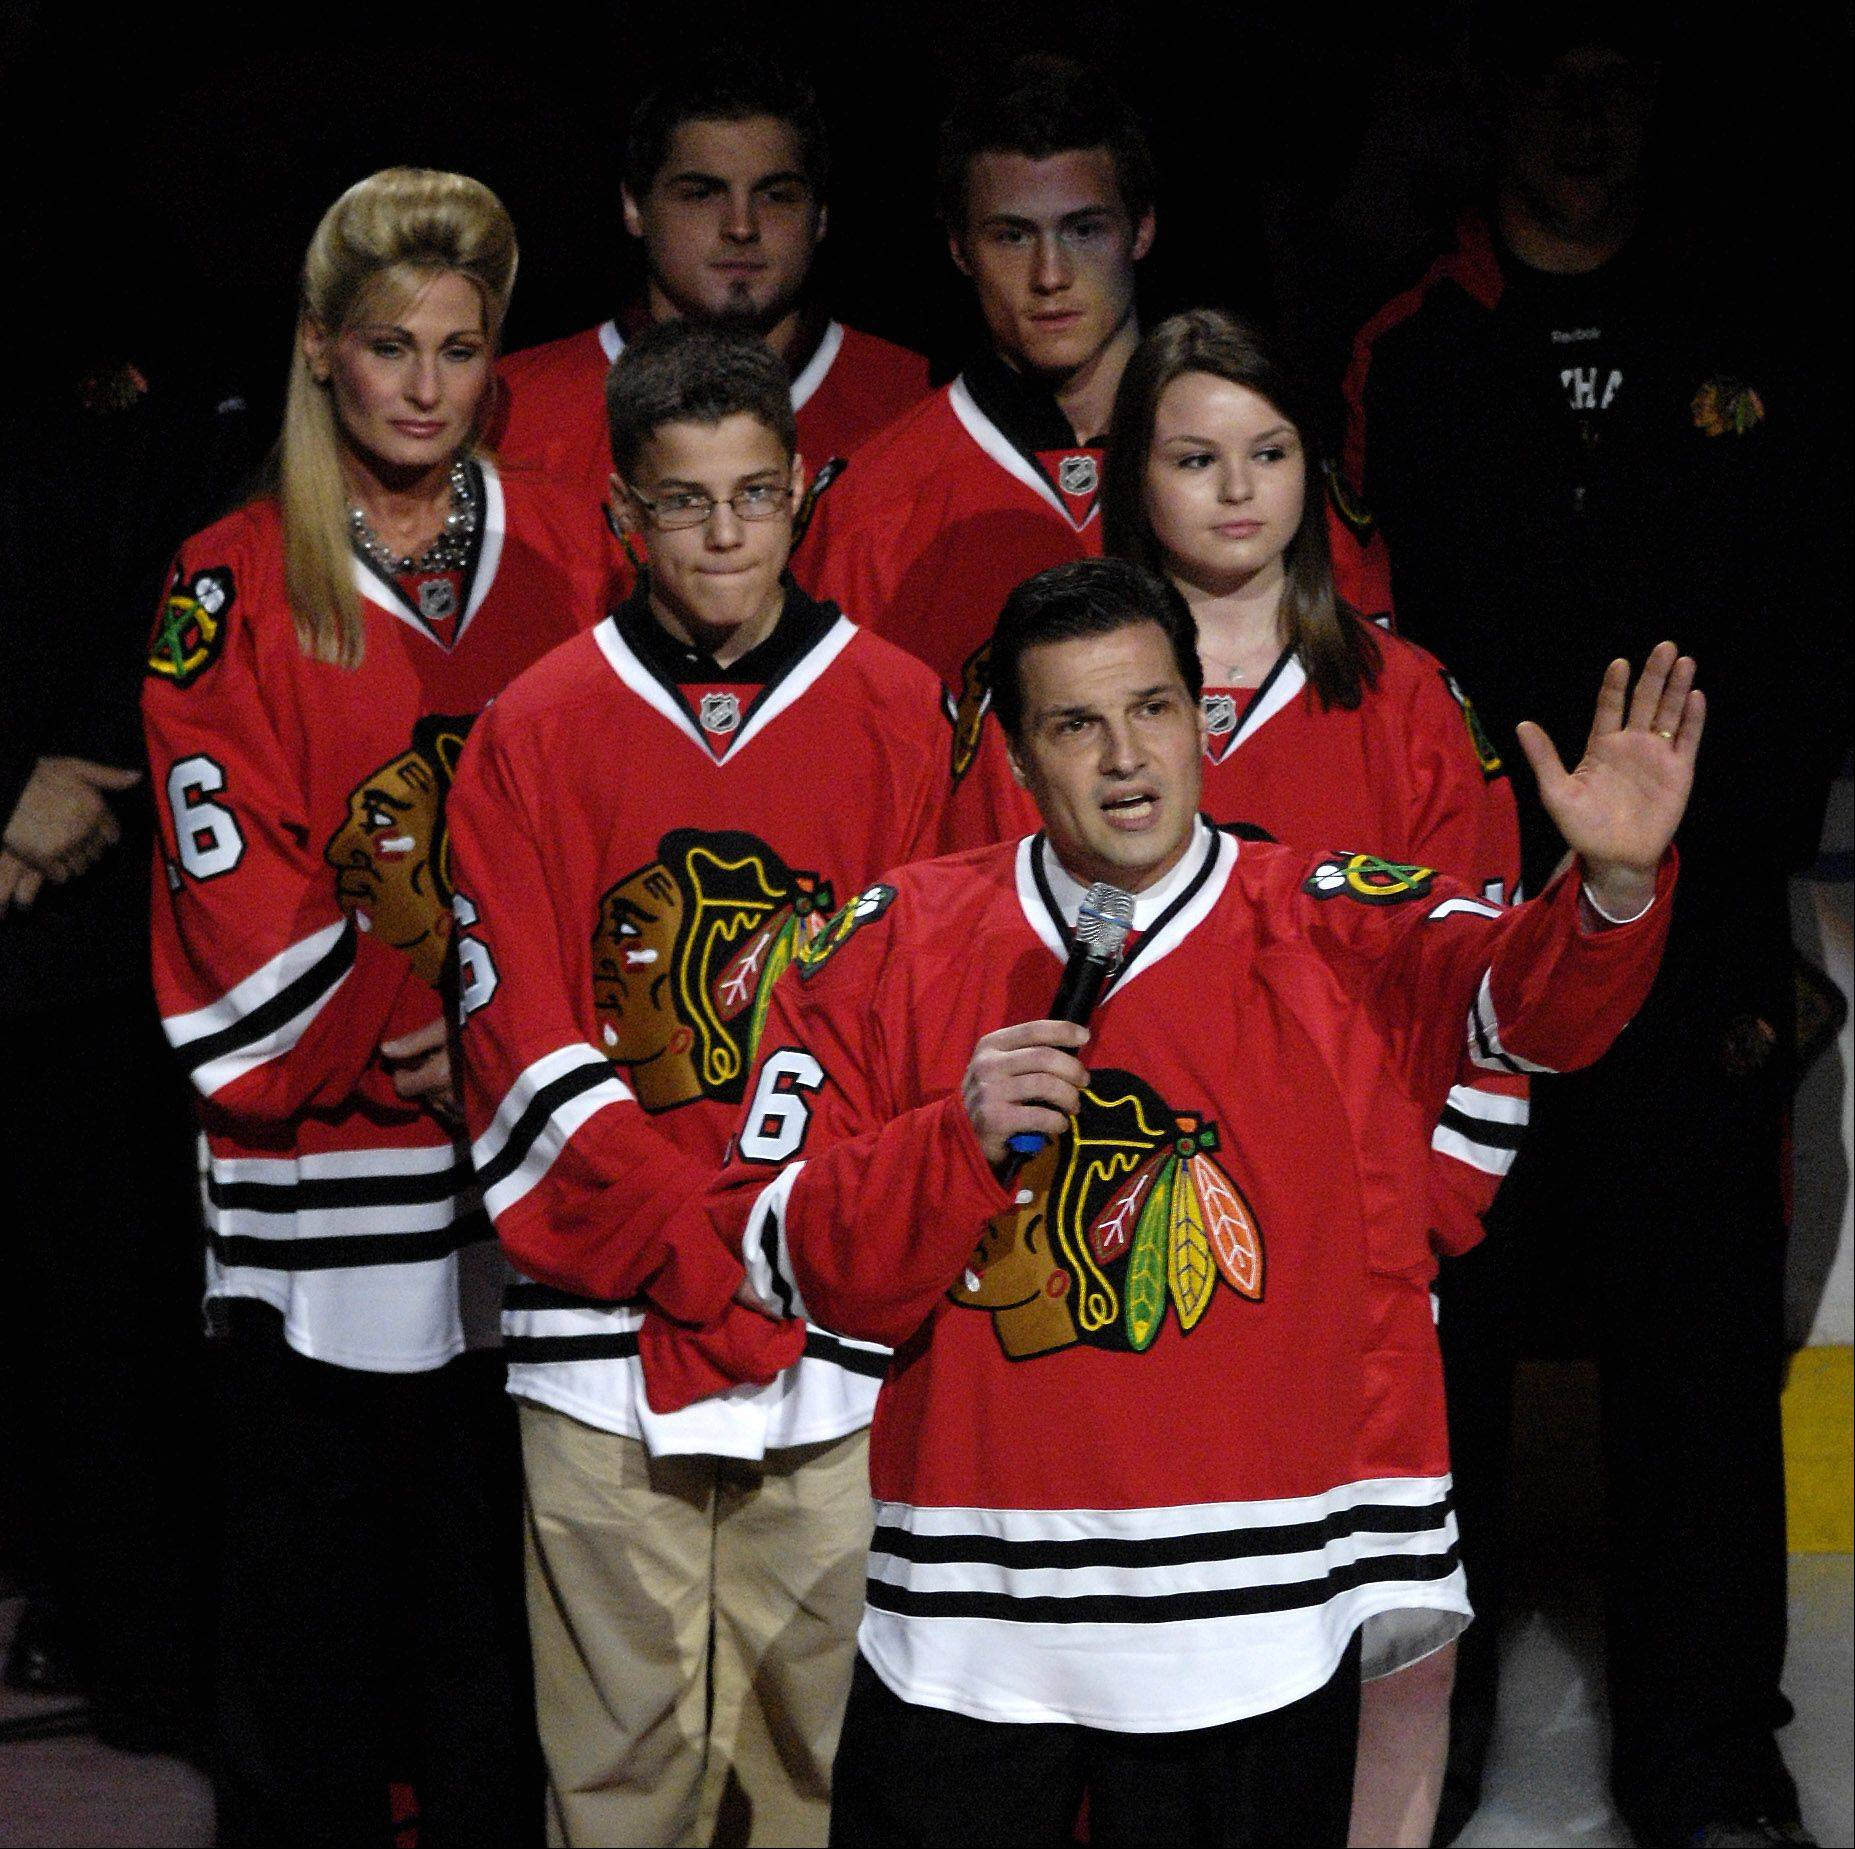 The Chicago Blackhawks honored Eddie Olczyk, front, with a special night during the 2009-10 season, and now the U.S. Hockey Hall of Fame will induct him this fall.